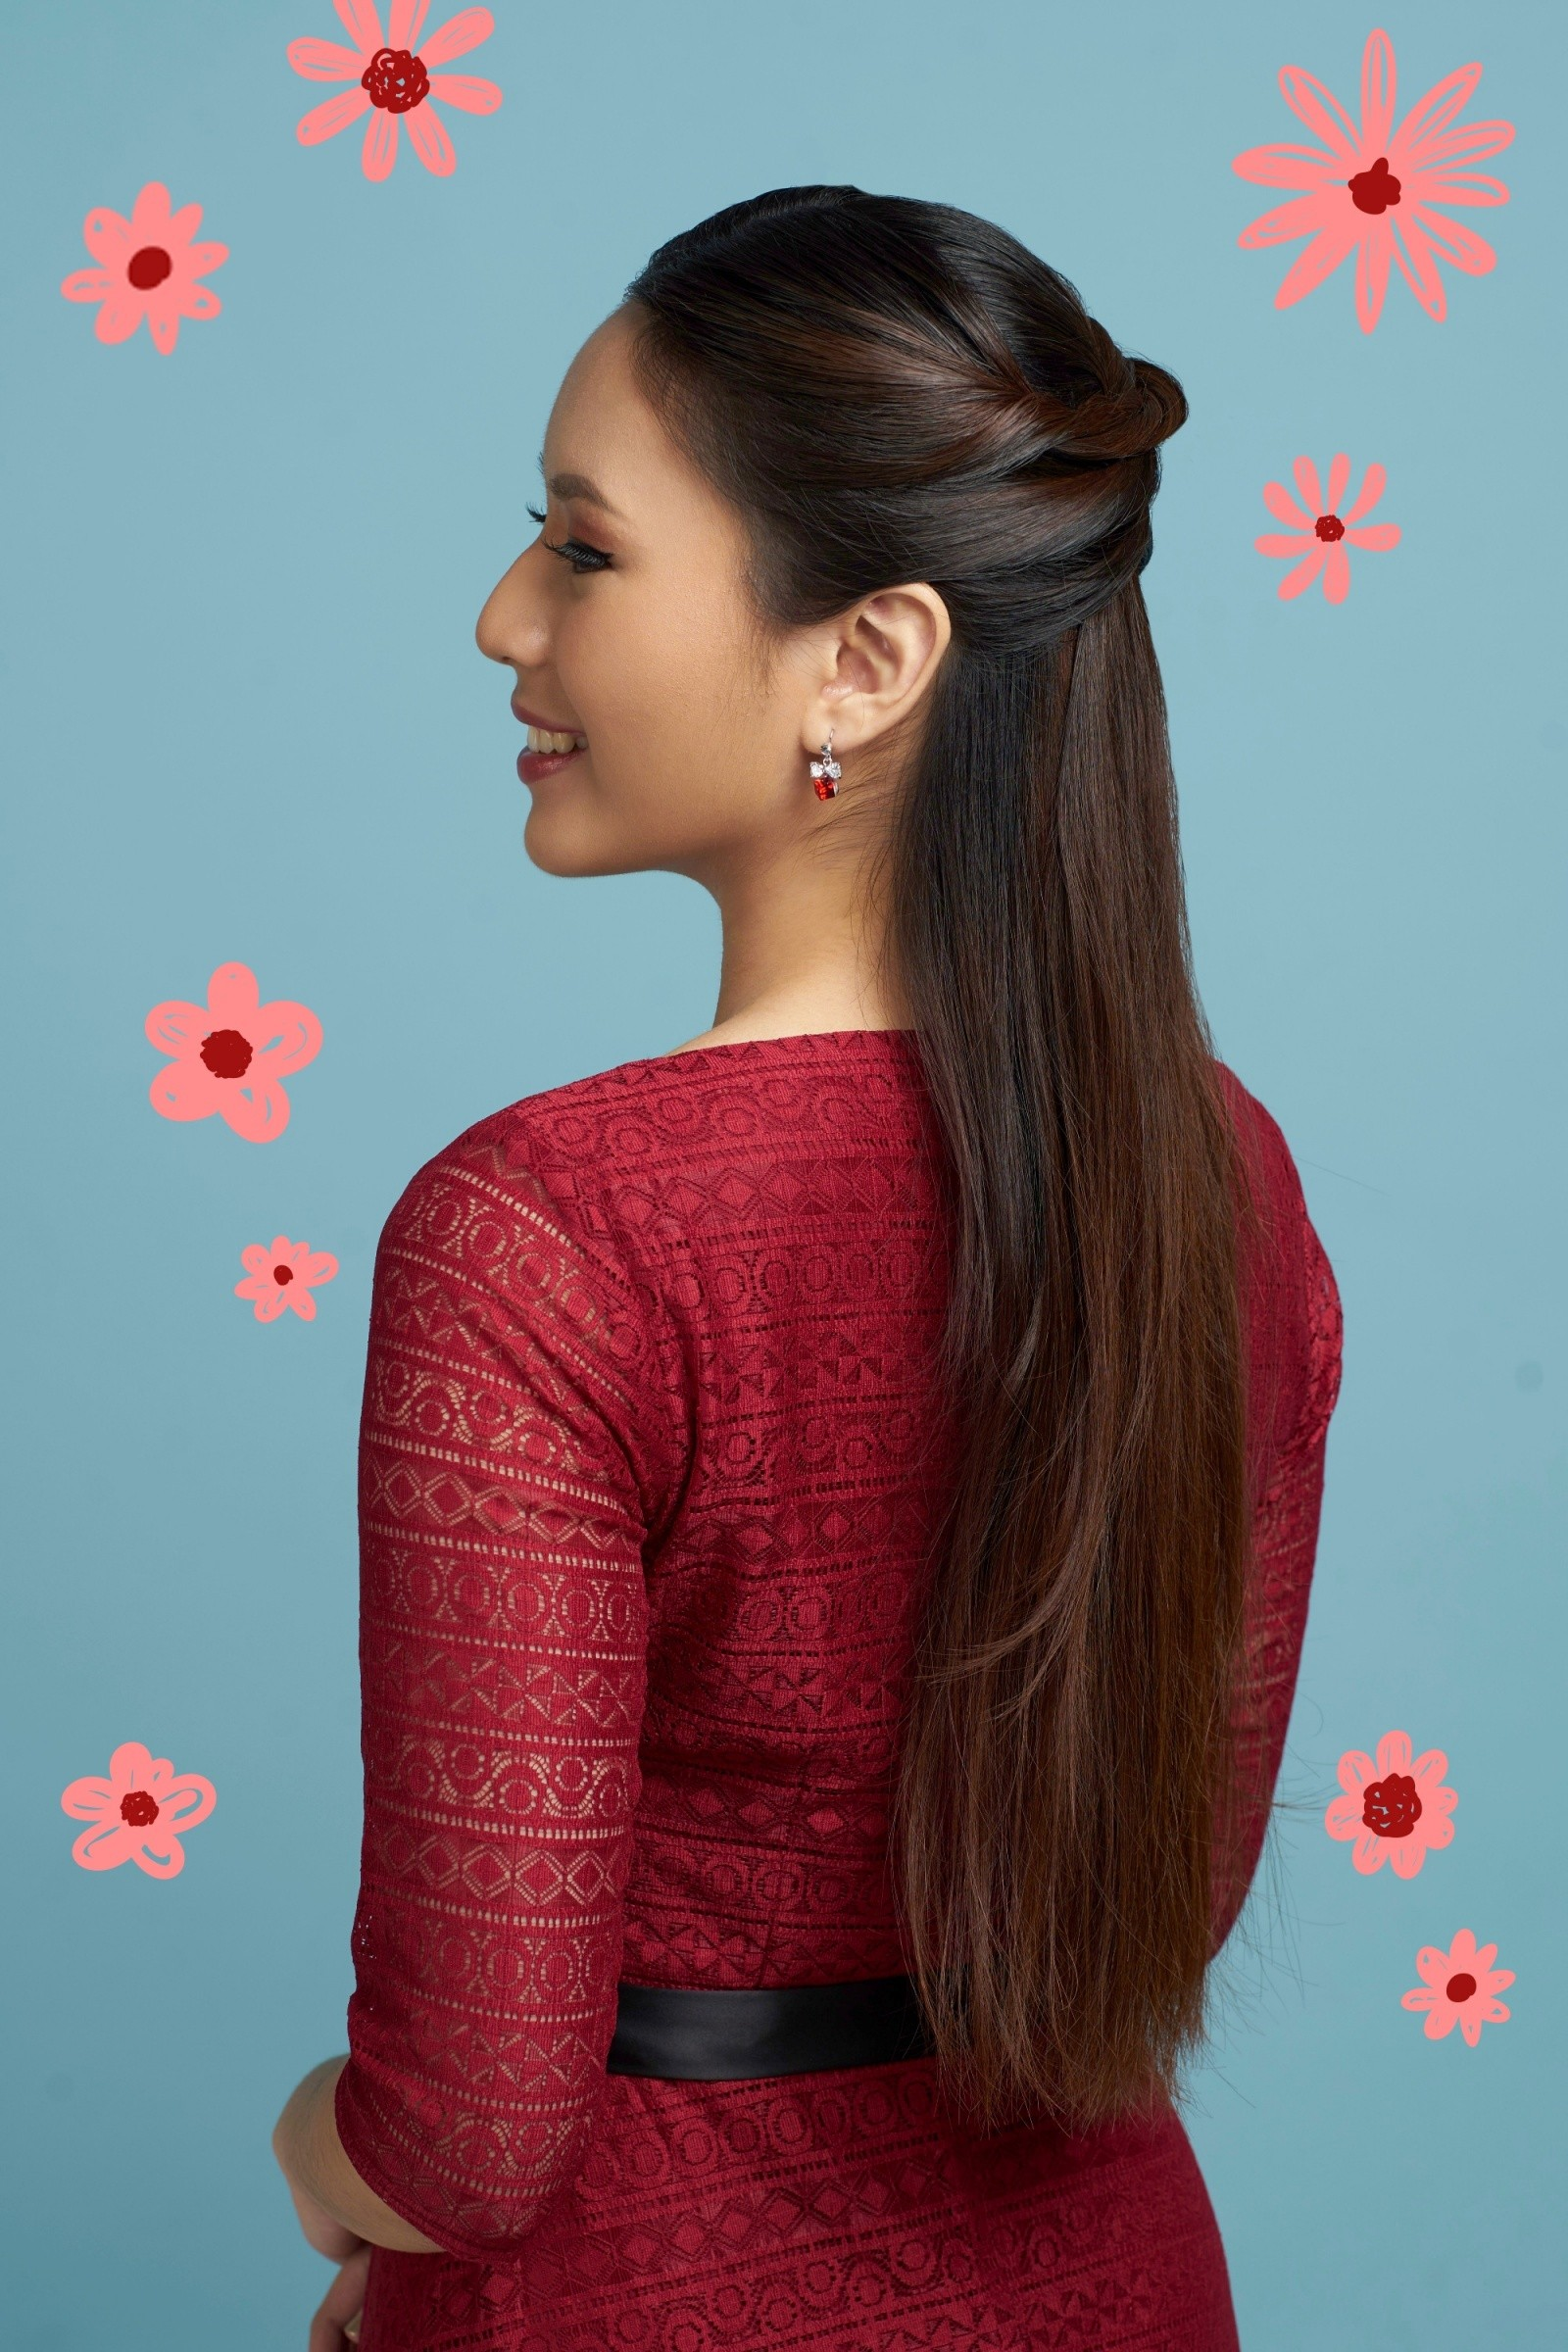 Flores de Mayo hairstyles: Asian woman with long hair in half up criss cross